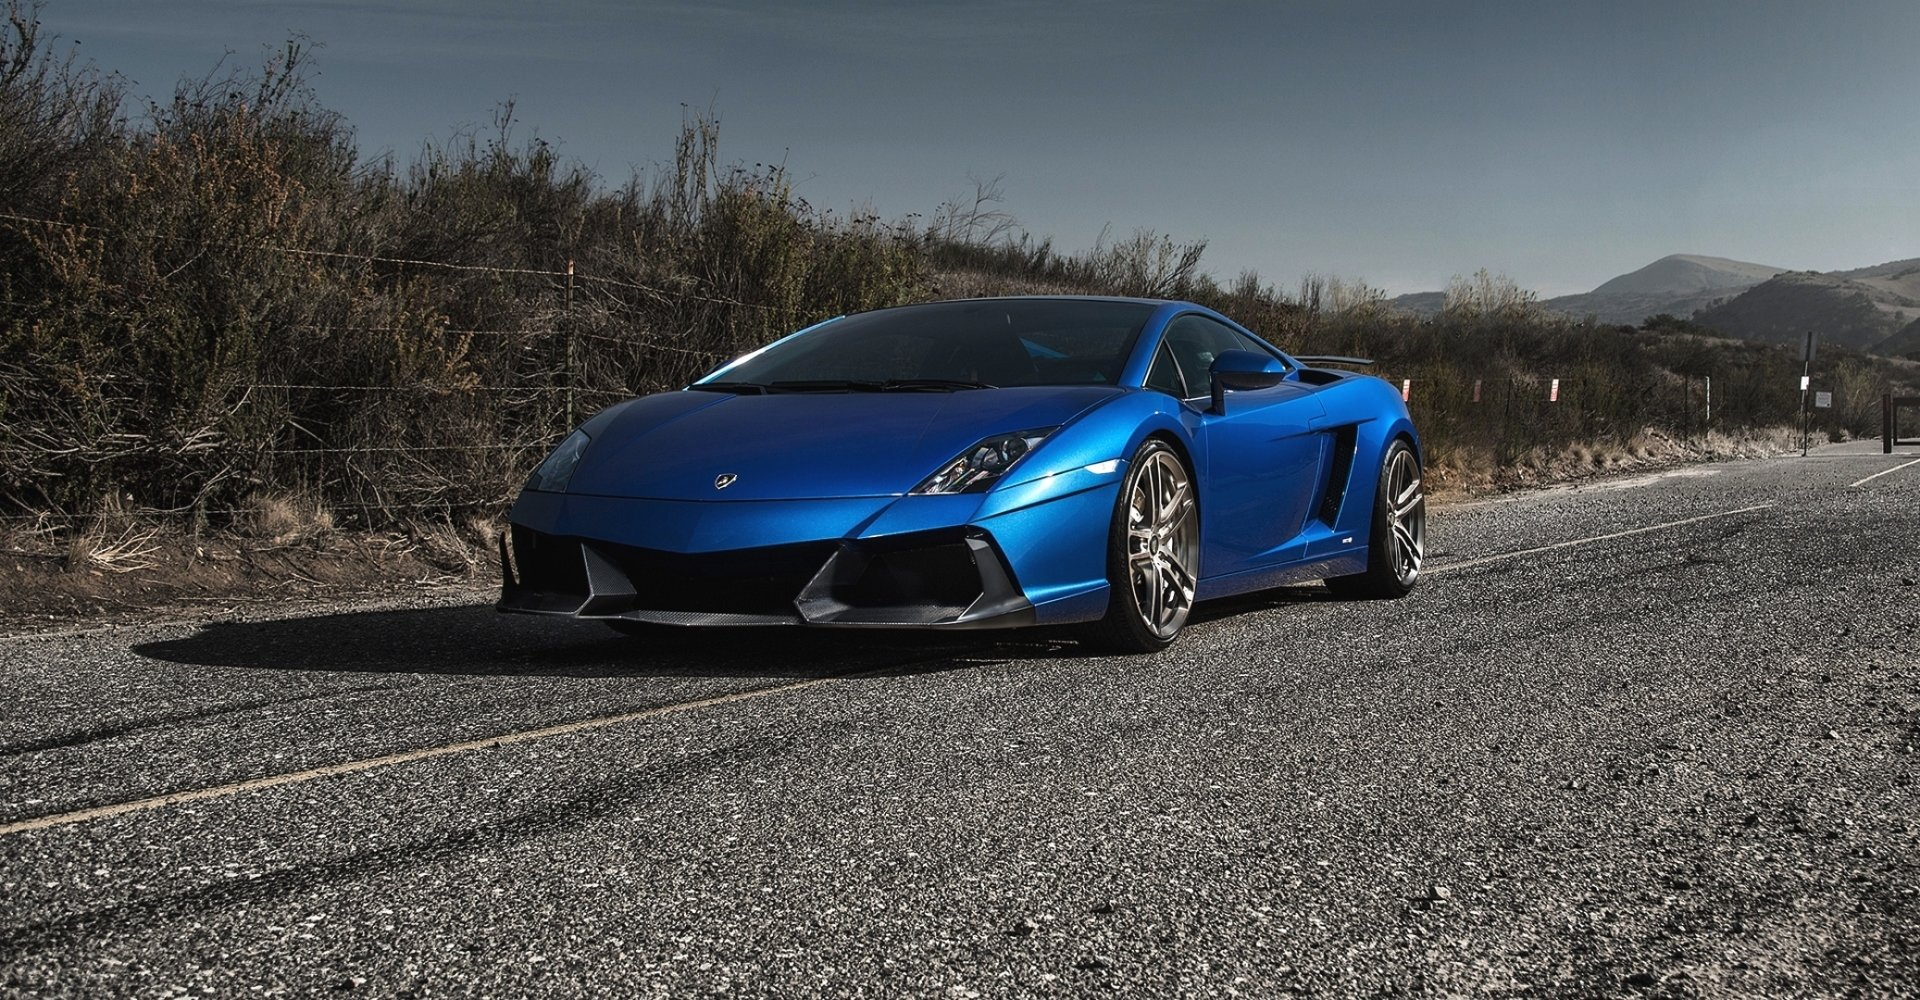 Vehicles - Lamborghini Gallardo  Car Lamborghini Vehicle Blue Car Sport Car Supercar Wallpaper